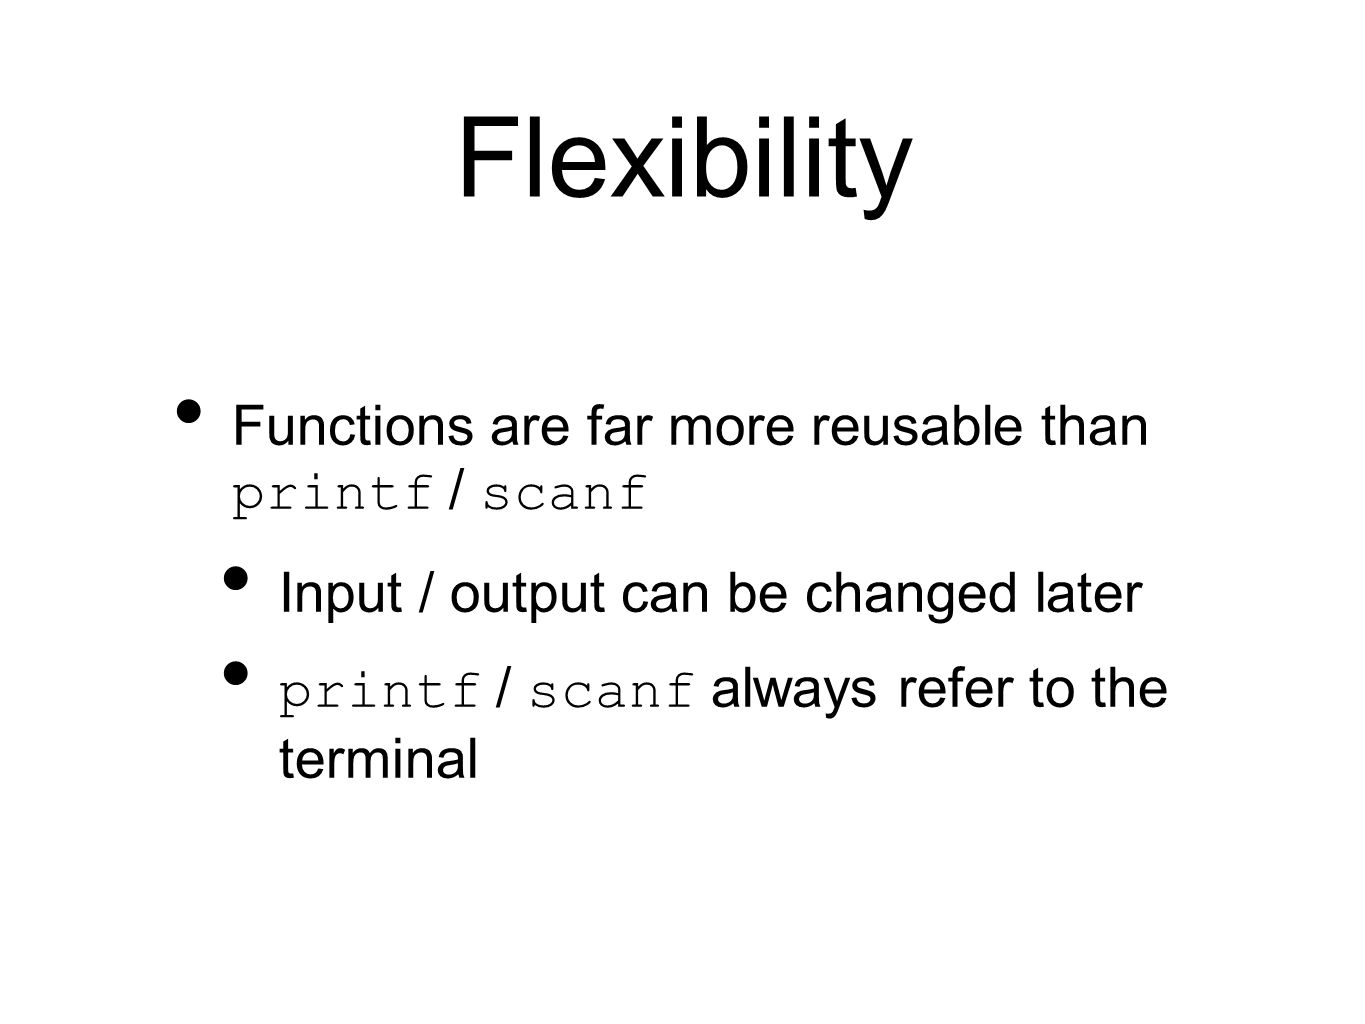 Flexibility Functions are far more reusable than printf / scanf Input / output can be changed later printf / scanf always refer to the terminal